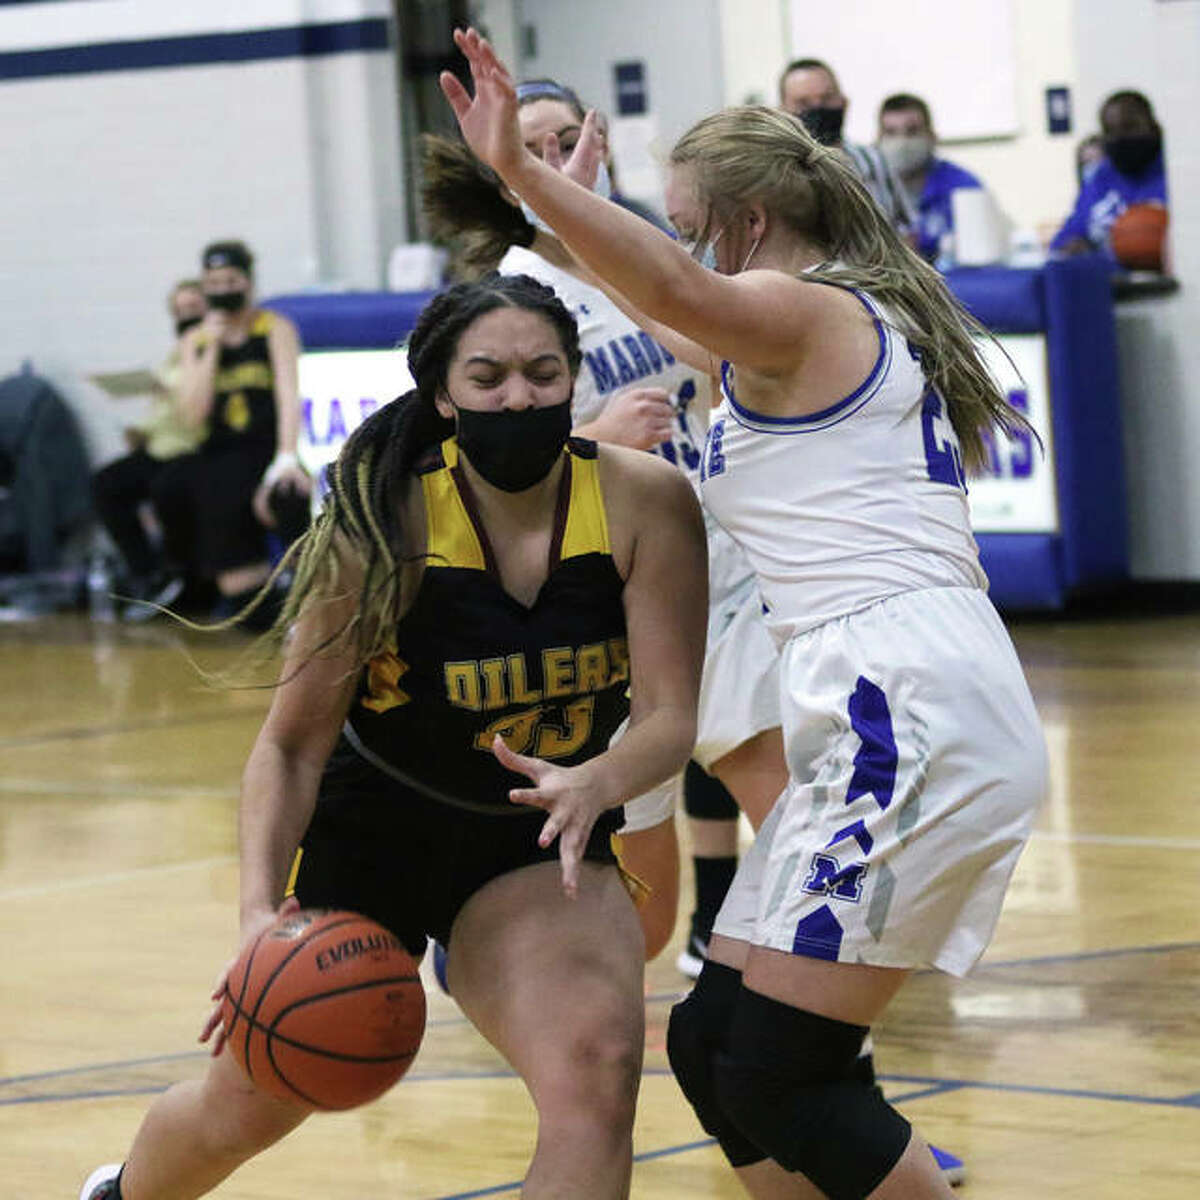 EA-WR's Emily Johnson (left) drives on a Marquette Catholic defender in a game earlier this season. Johnson, a freshman, had 14 points and 10 rebounds in the Oilers win Monday in Wood River.